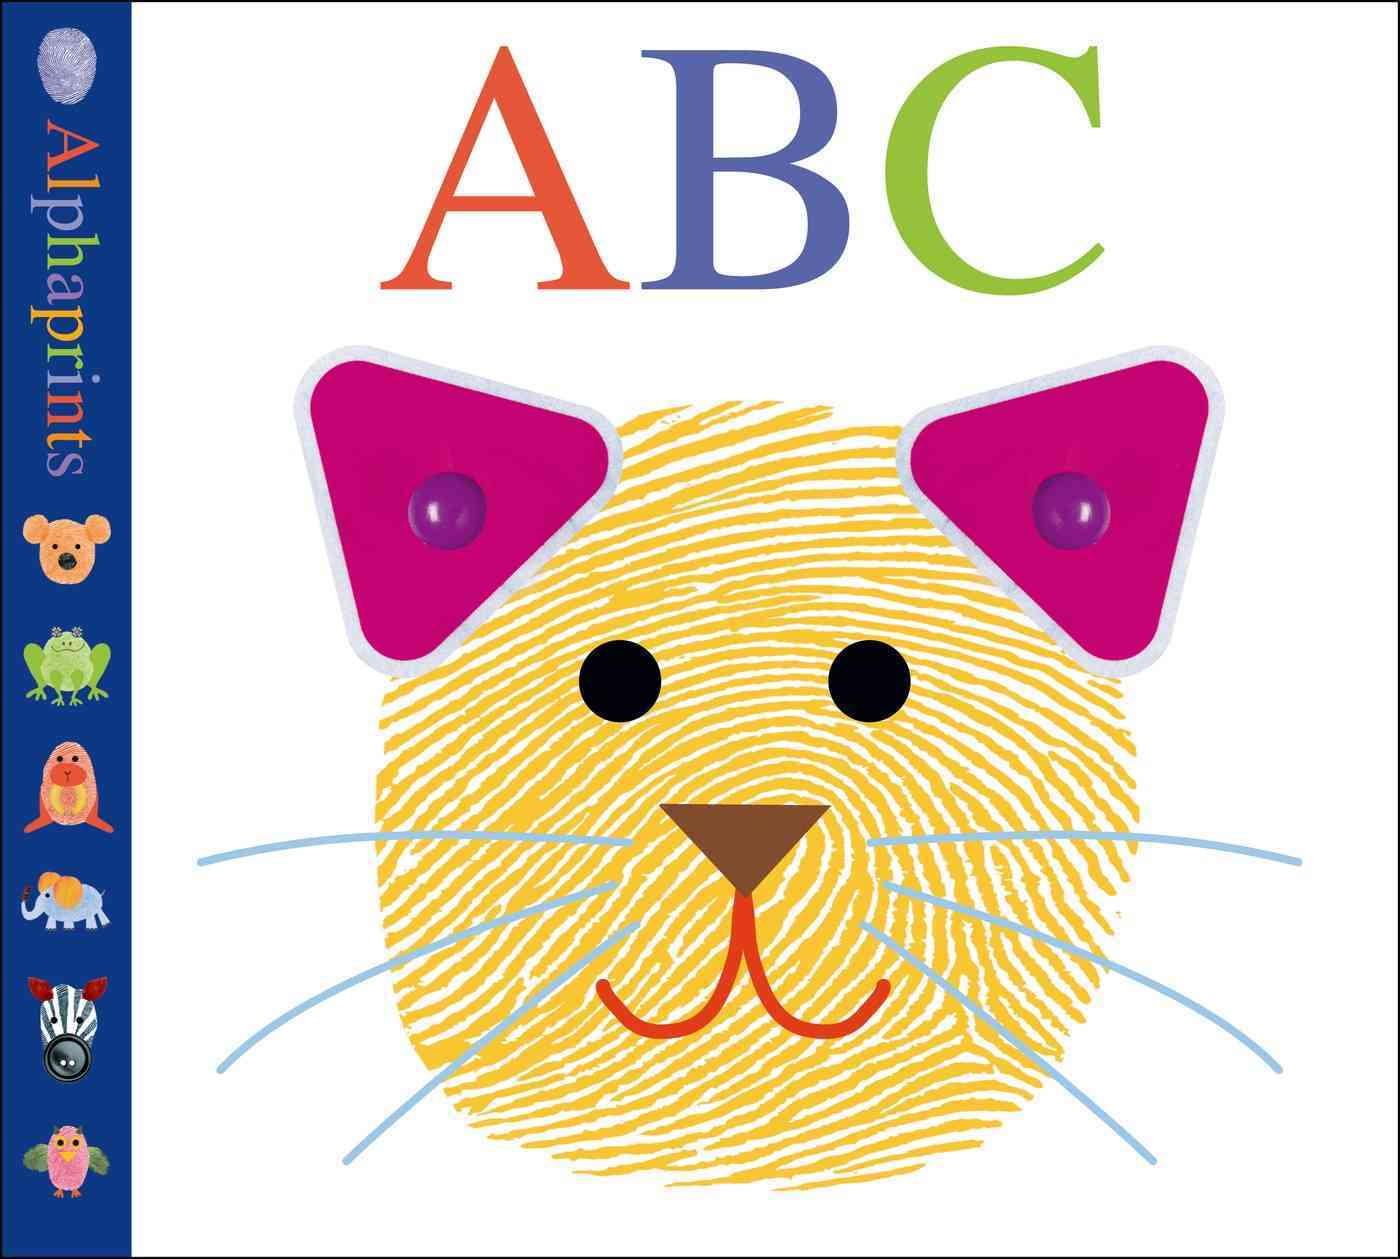 Alphaprints ABC By Priddy, Roger